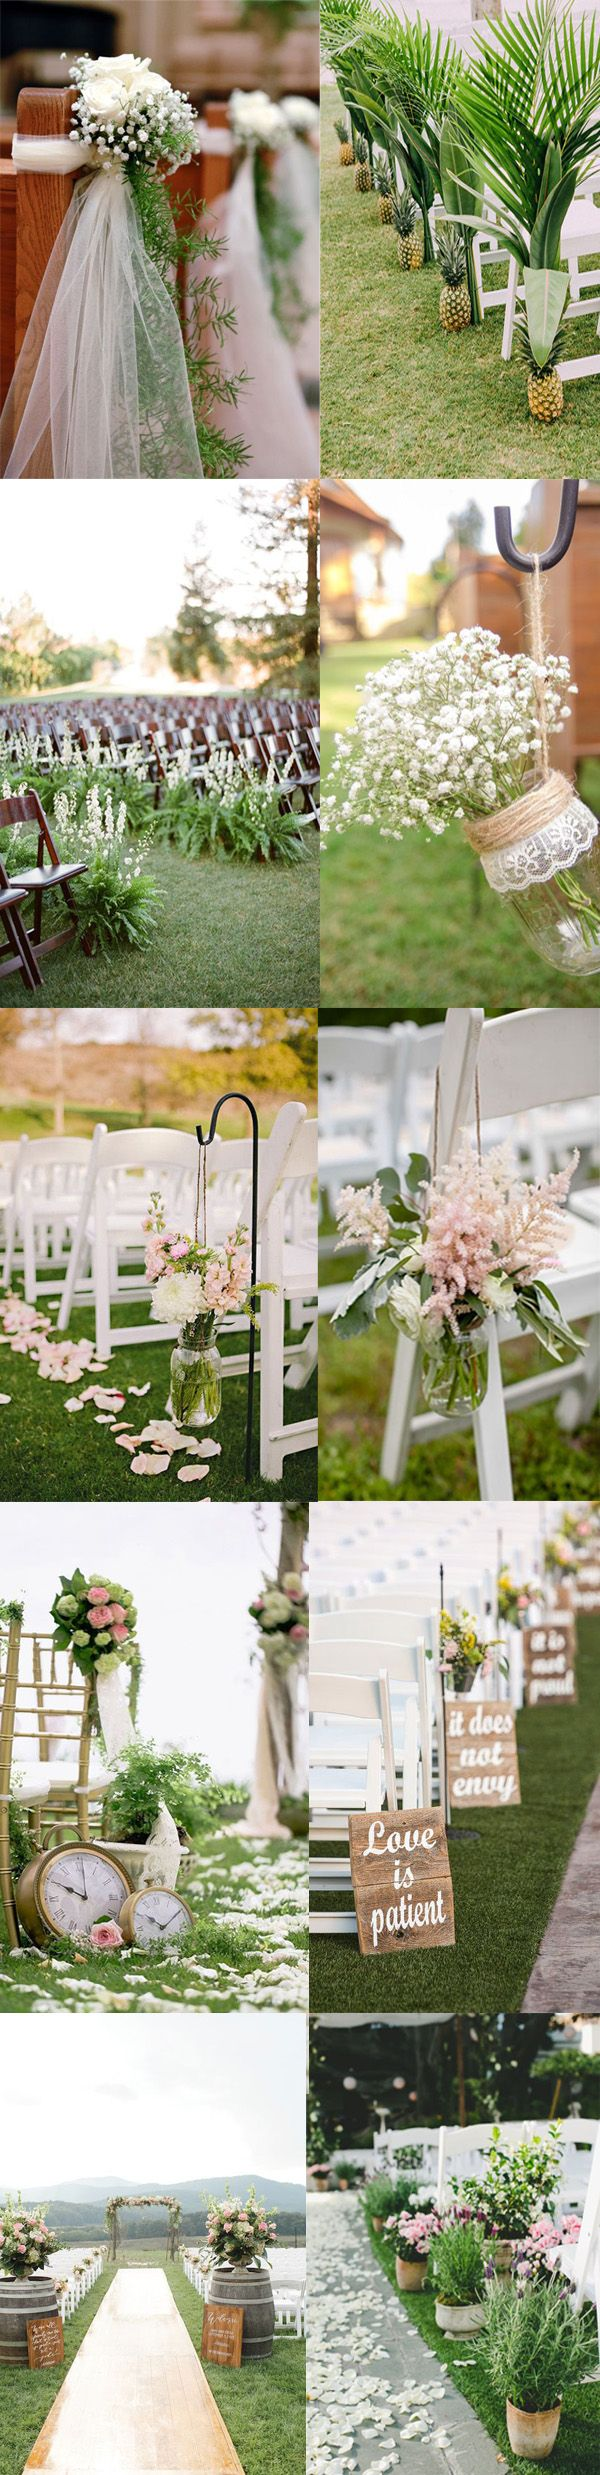 Go for a chic look with beasutiful and unique aisle and arch for a charming outdoor wedding? Want to wow your guests with a ceremony arch and aisle worthy of your big entrance? Here are some different arch and aisle decoration styles and ideas to get you inspired! Ceremony arch ideas photo credit: SMP / SMP / himisspuff / rusticweddingchic / bloglovin / modwedding / hellomay / SMP / deerpearlflowers / SMP Ceremony aisle …